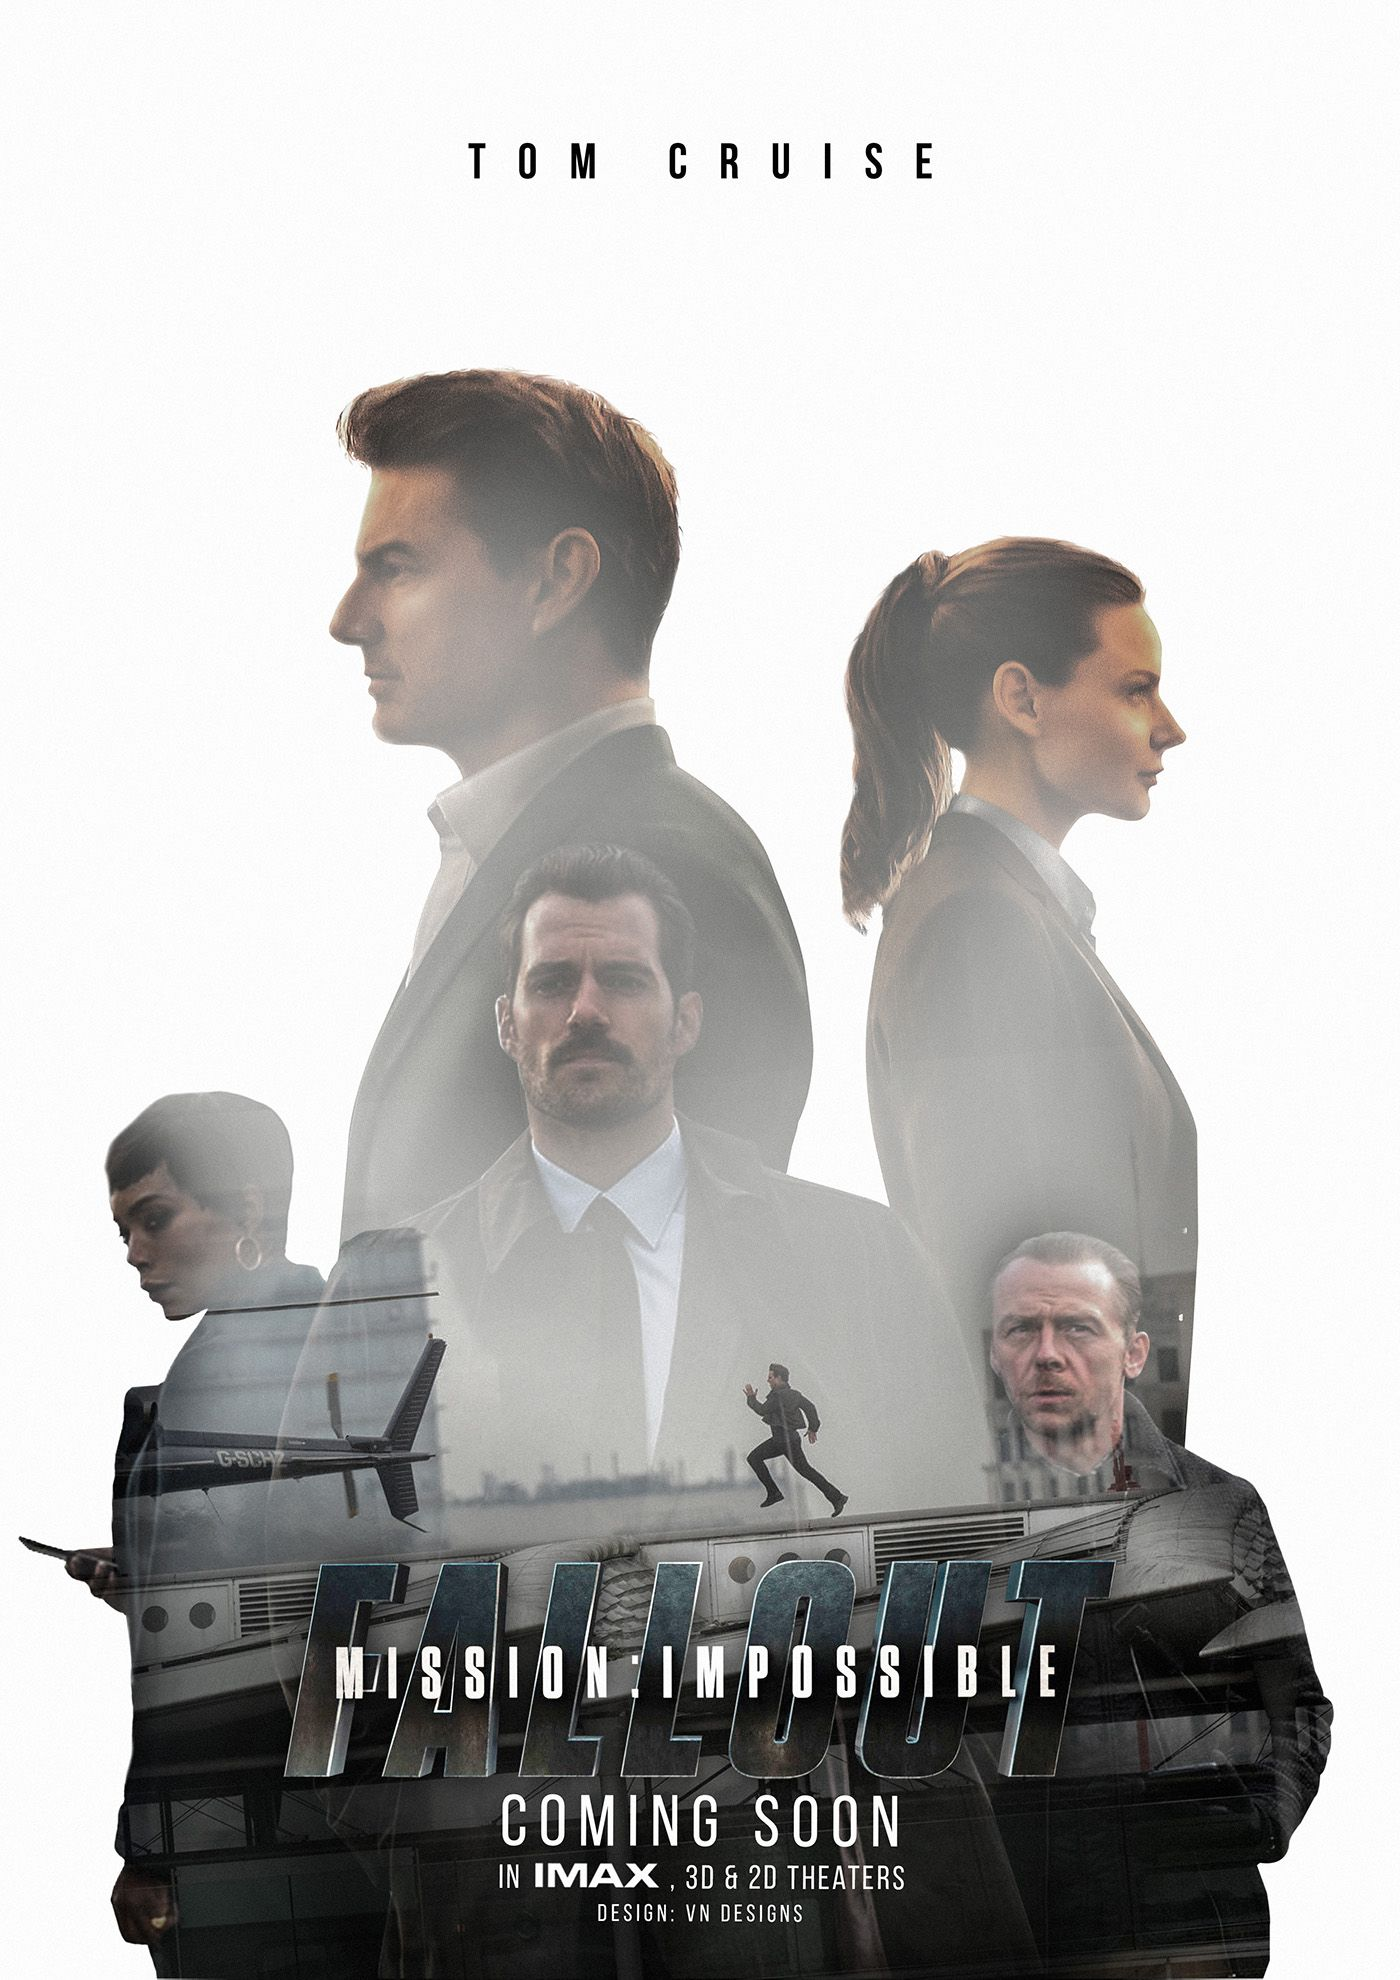 Mission Impossible Fallout Poster Design On Behance Mission Impossible Movie Fallout Posters Mission Impossible Fallout